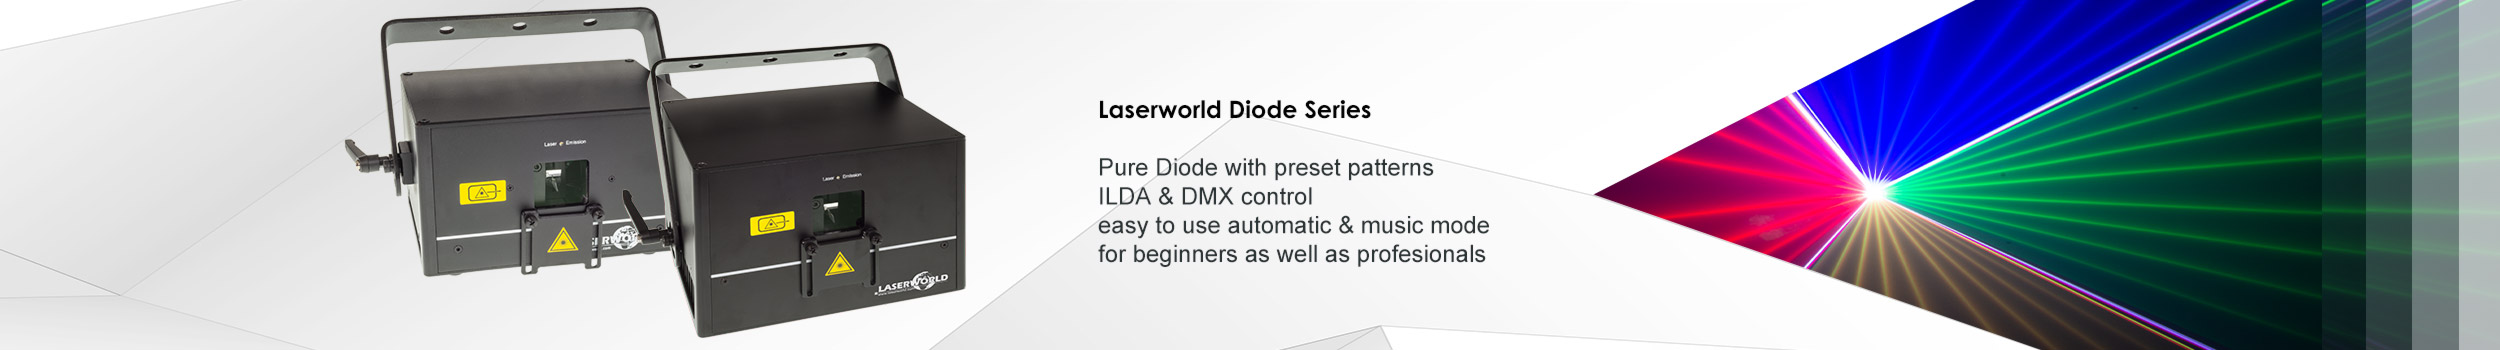 Laserworld Diode Series